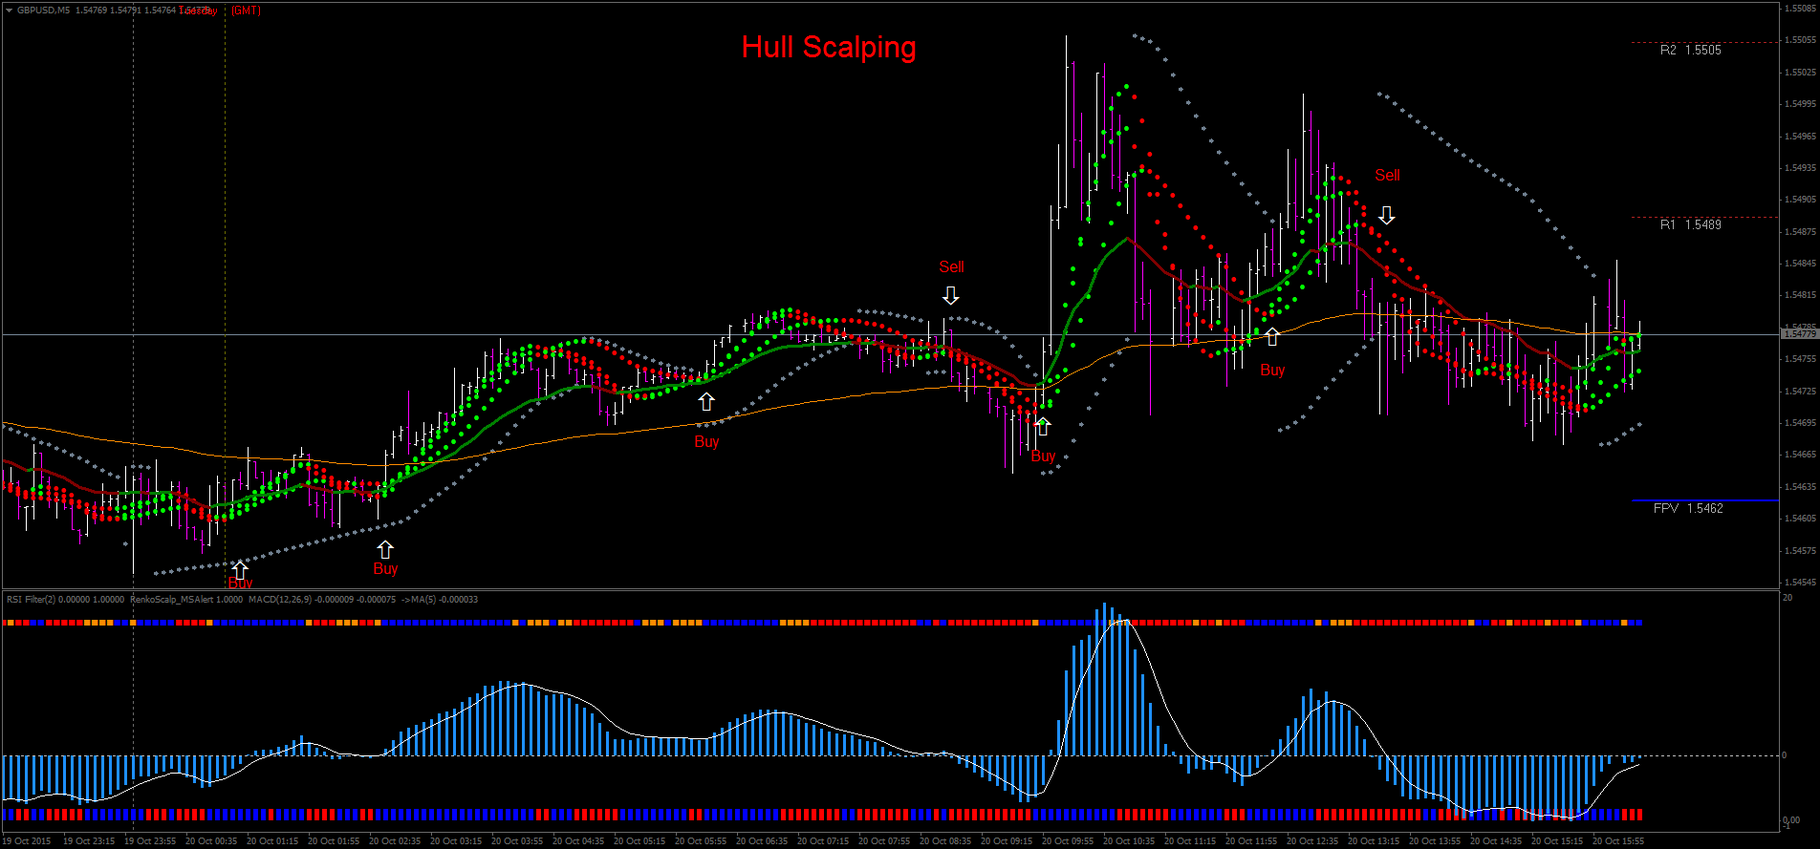 Hull Scalping - Forex Strategies - Forex Resources - Forex Trading